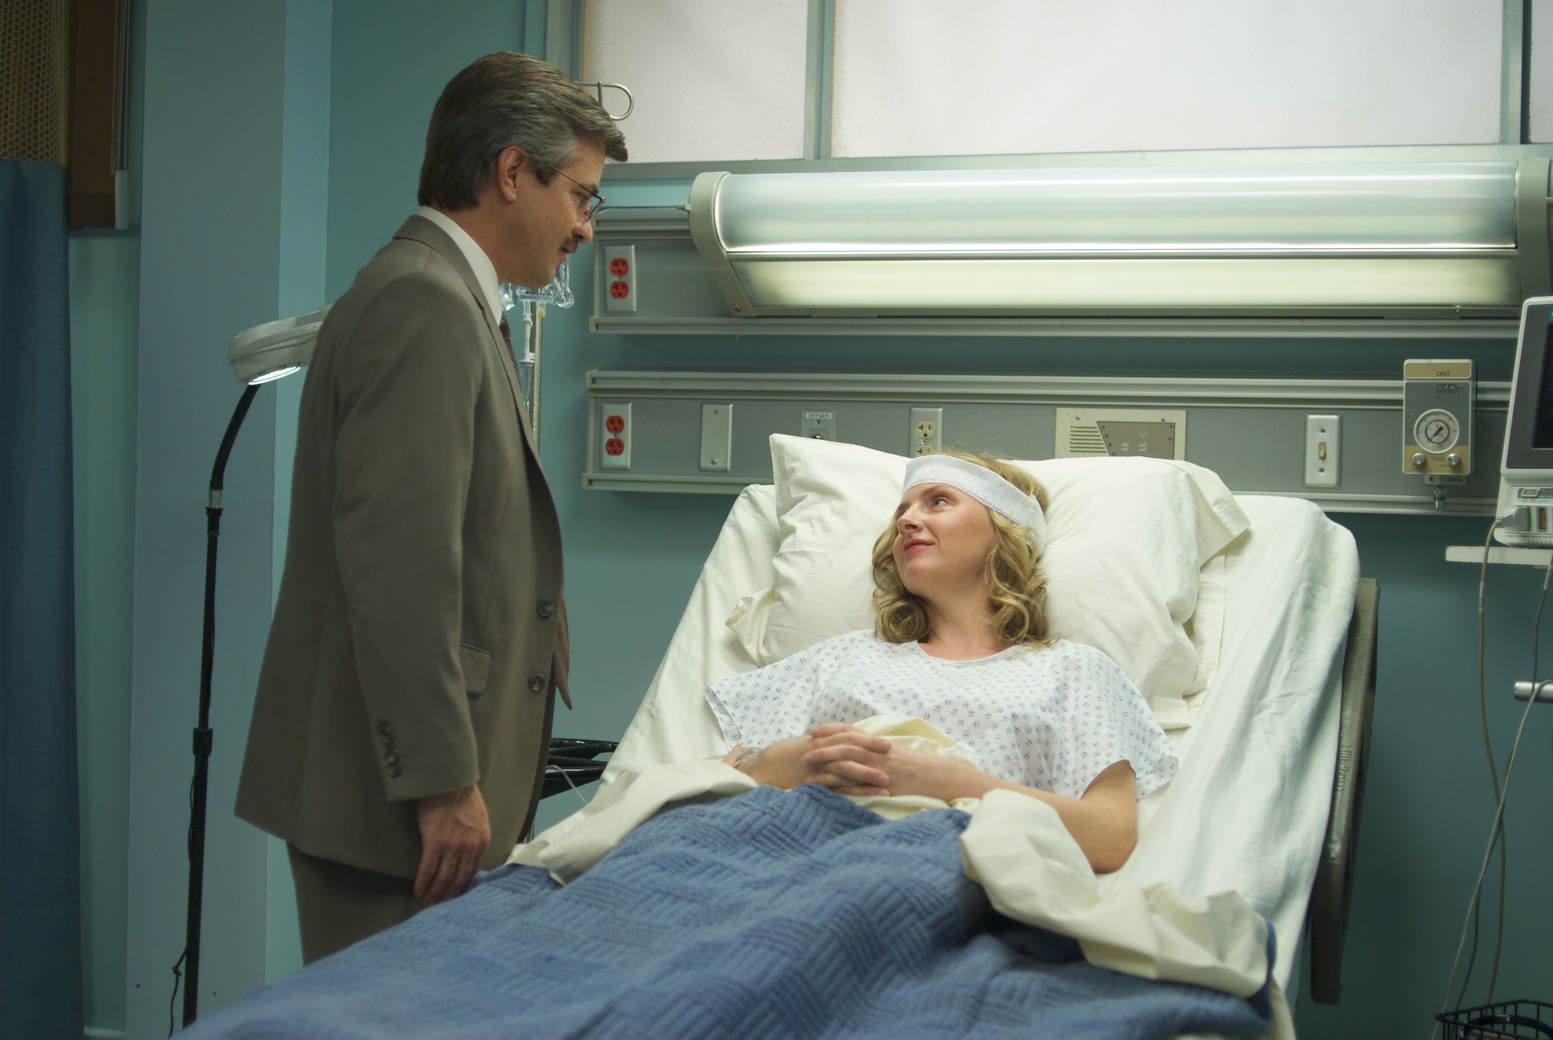 Dermot Mulroney and Hope Davis in The Family Tree (2011)